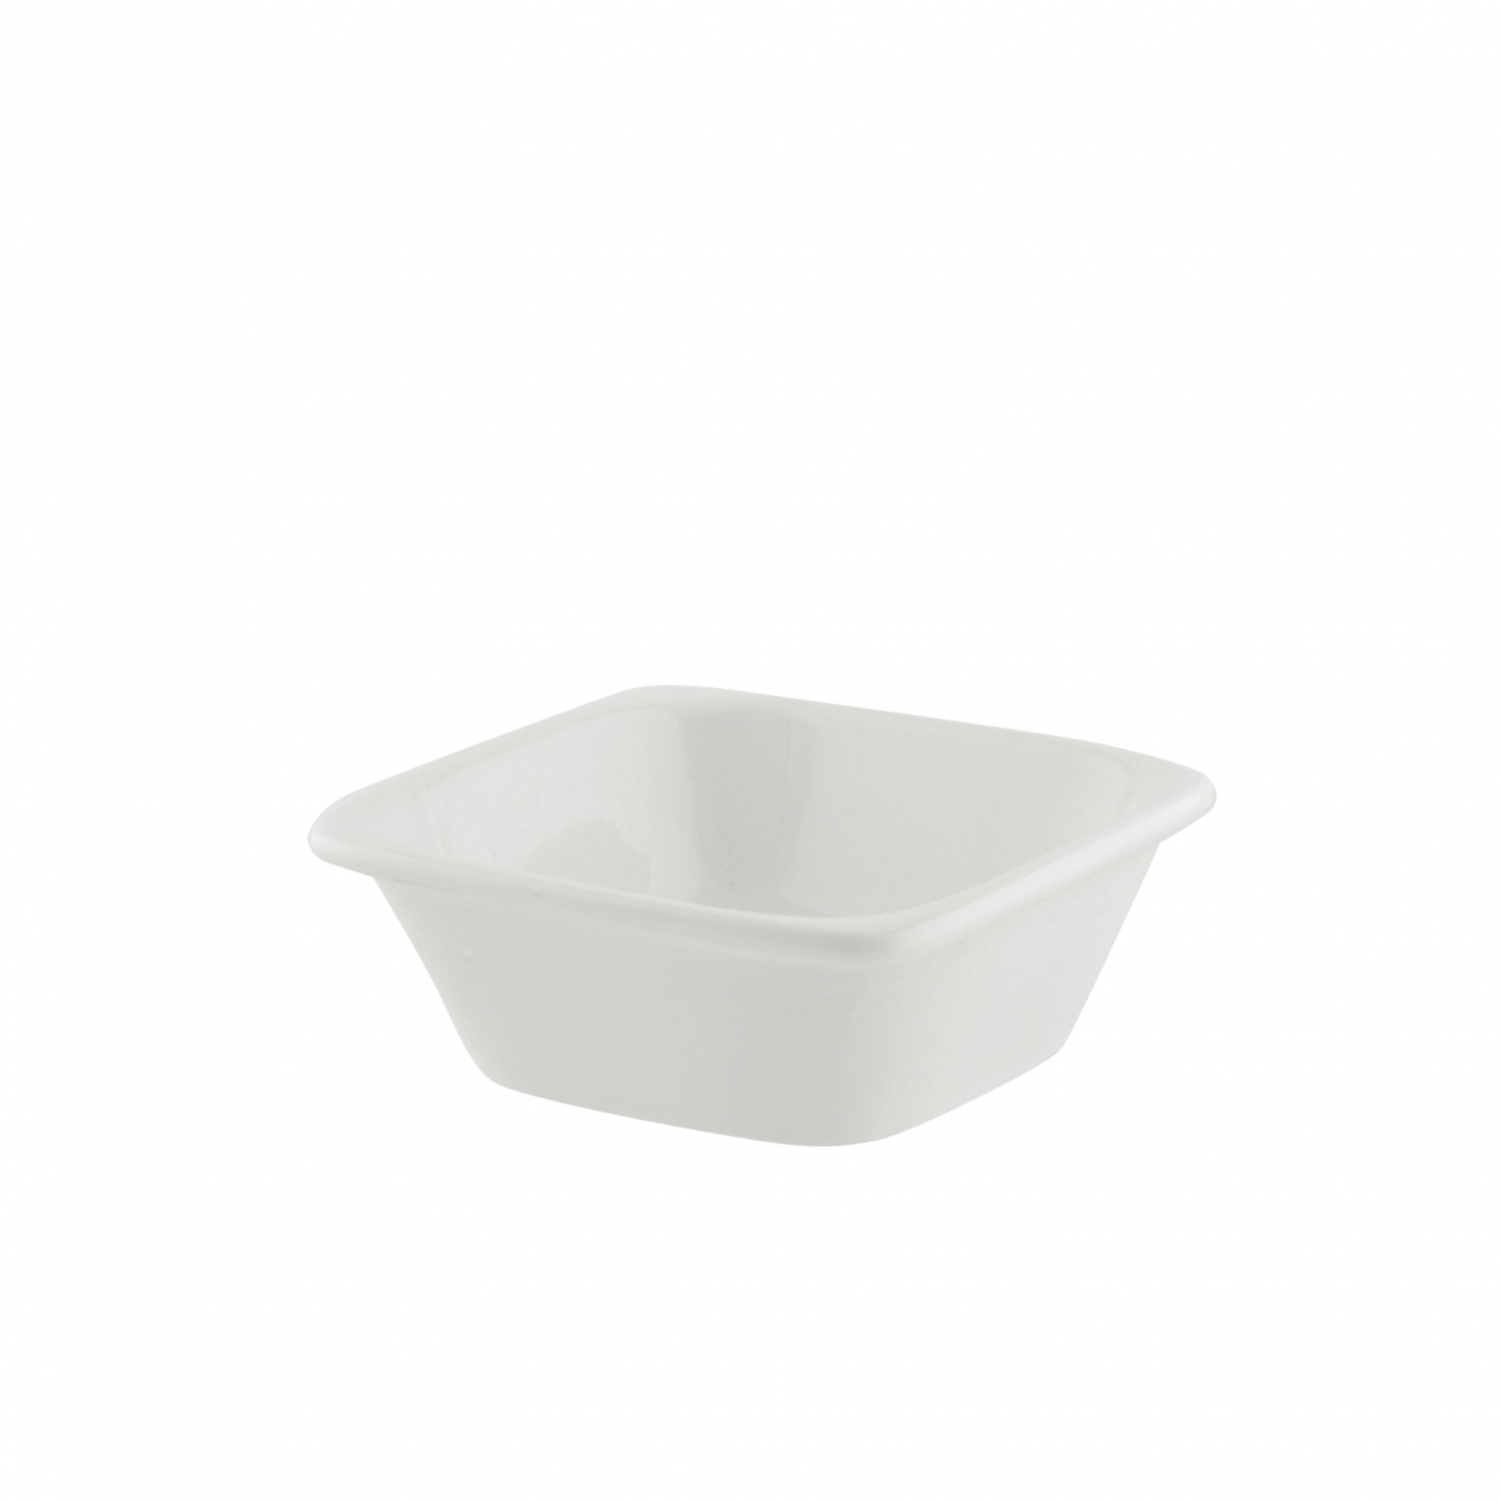 10 Strawberry Street WTR-4SQBWL Whittier Square Bowl 4 oz.